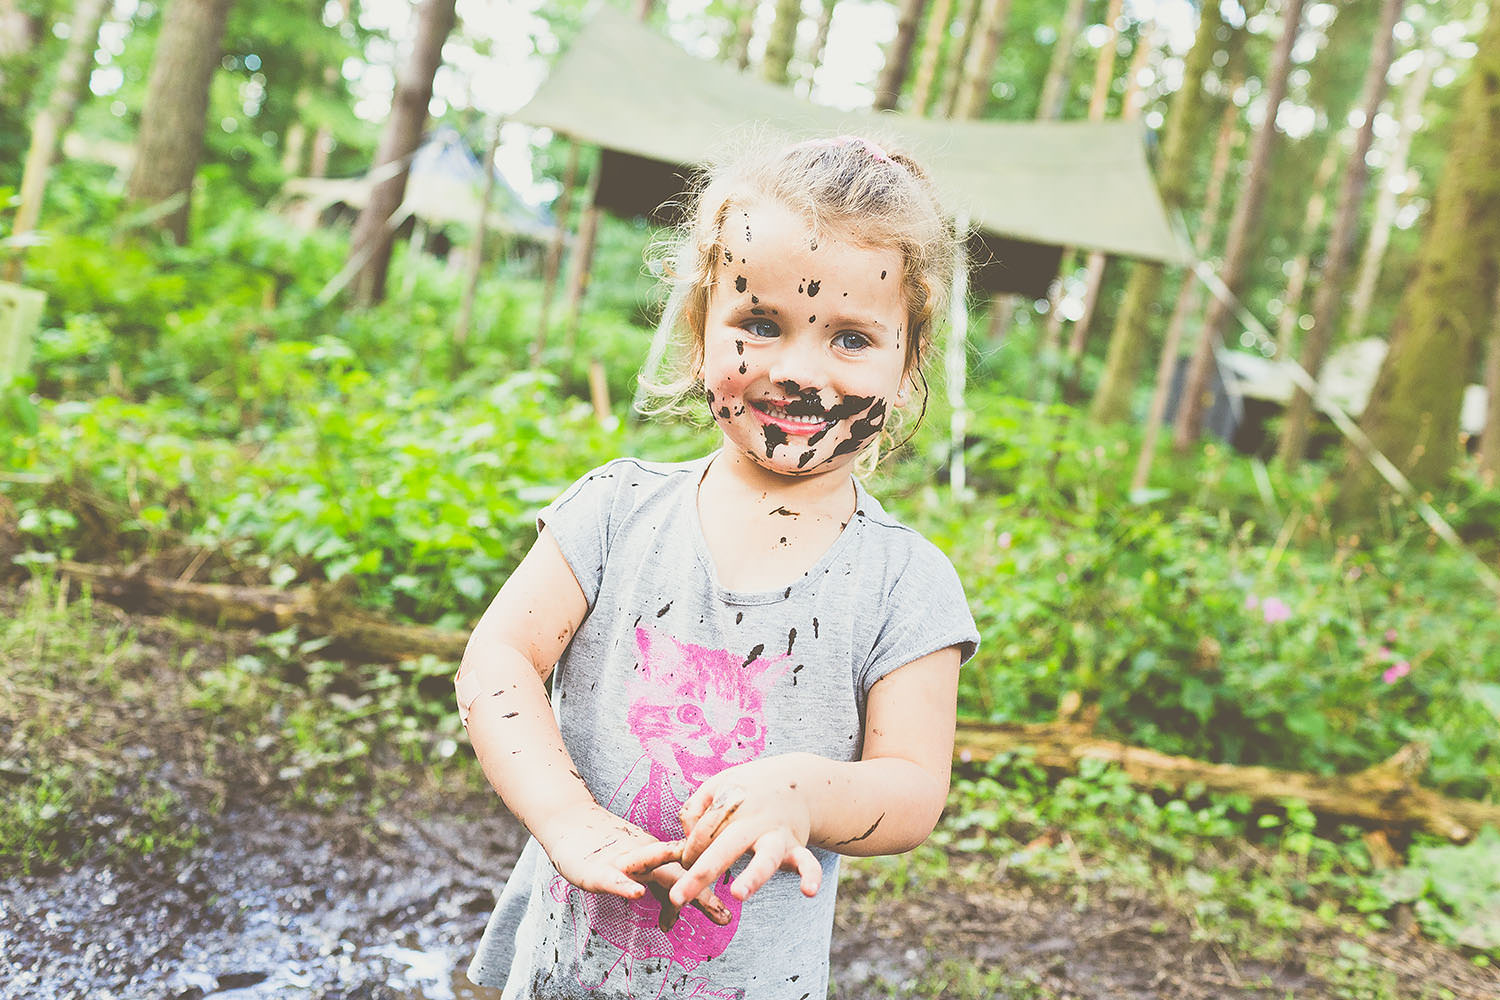 A small child with mud on her face.